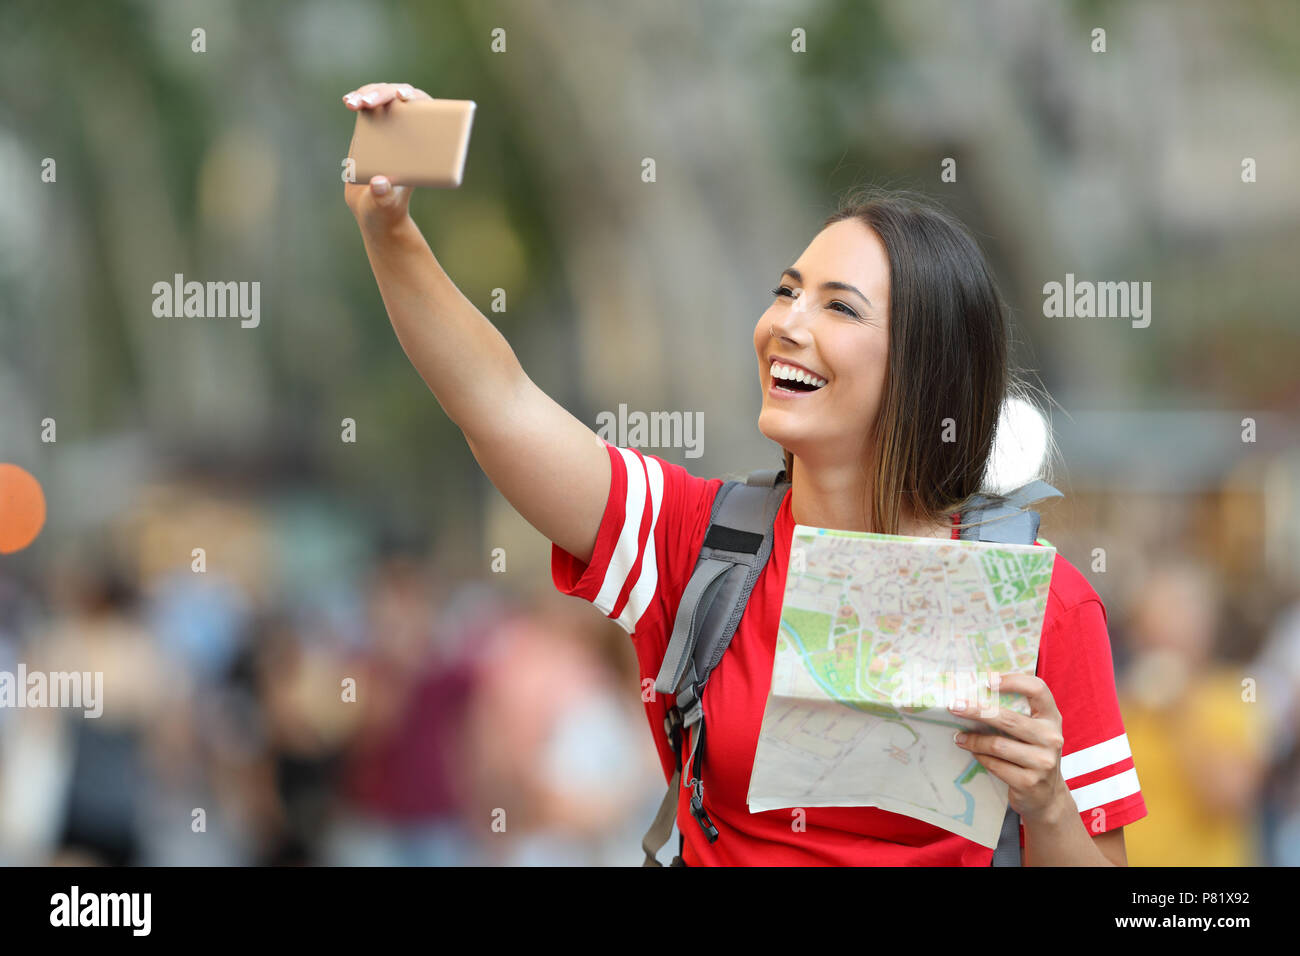 Happy teen tourist taking selfie in the street holding a map - Stock Image